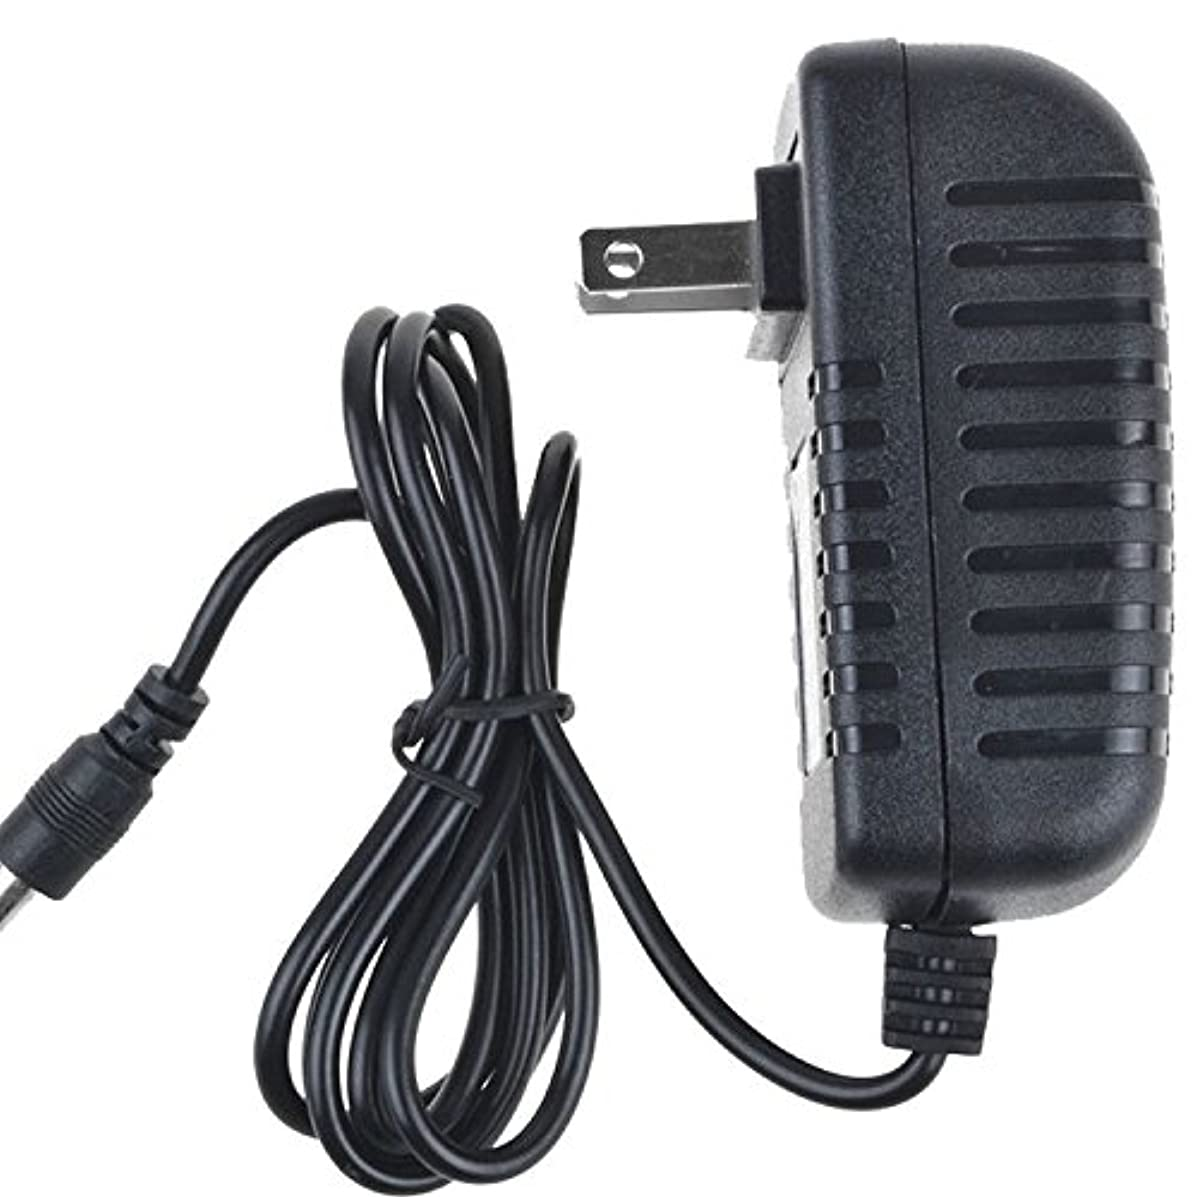 PK Power AC/DC Adapter for Nautilus R514, U514 Exercise Bike Power Supply Cord Cable Charger Mains PSU